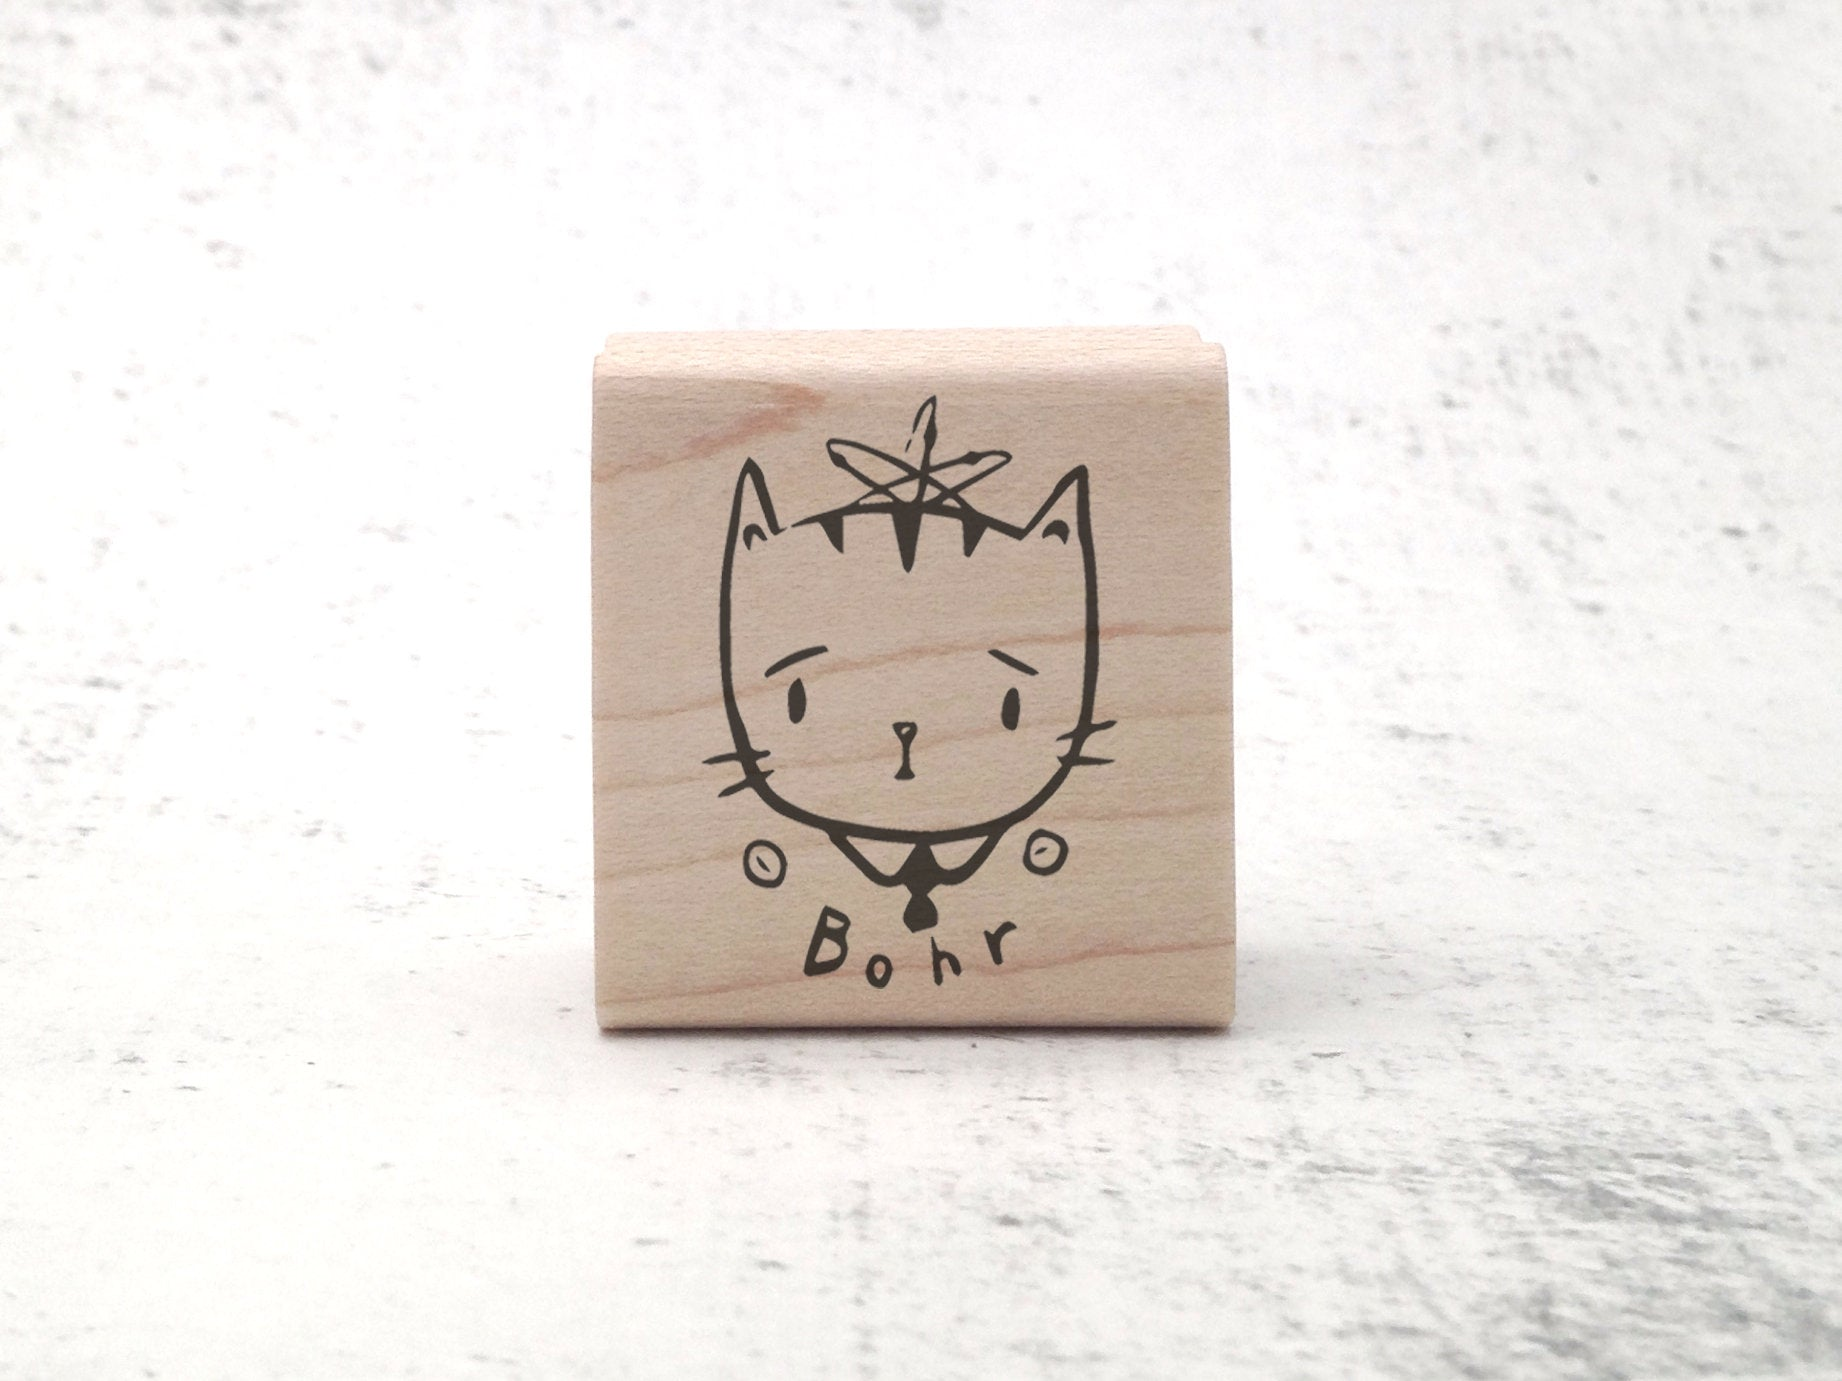 Max Planck, Albert Einstein, Alan Turing Science Cats Rubber Stamp - STEM Rubber Stamp - Teacher Grading Stamp - Geek Stamp Gift